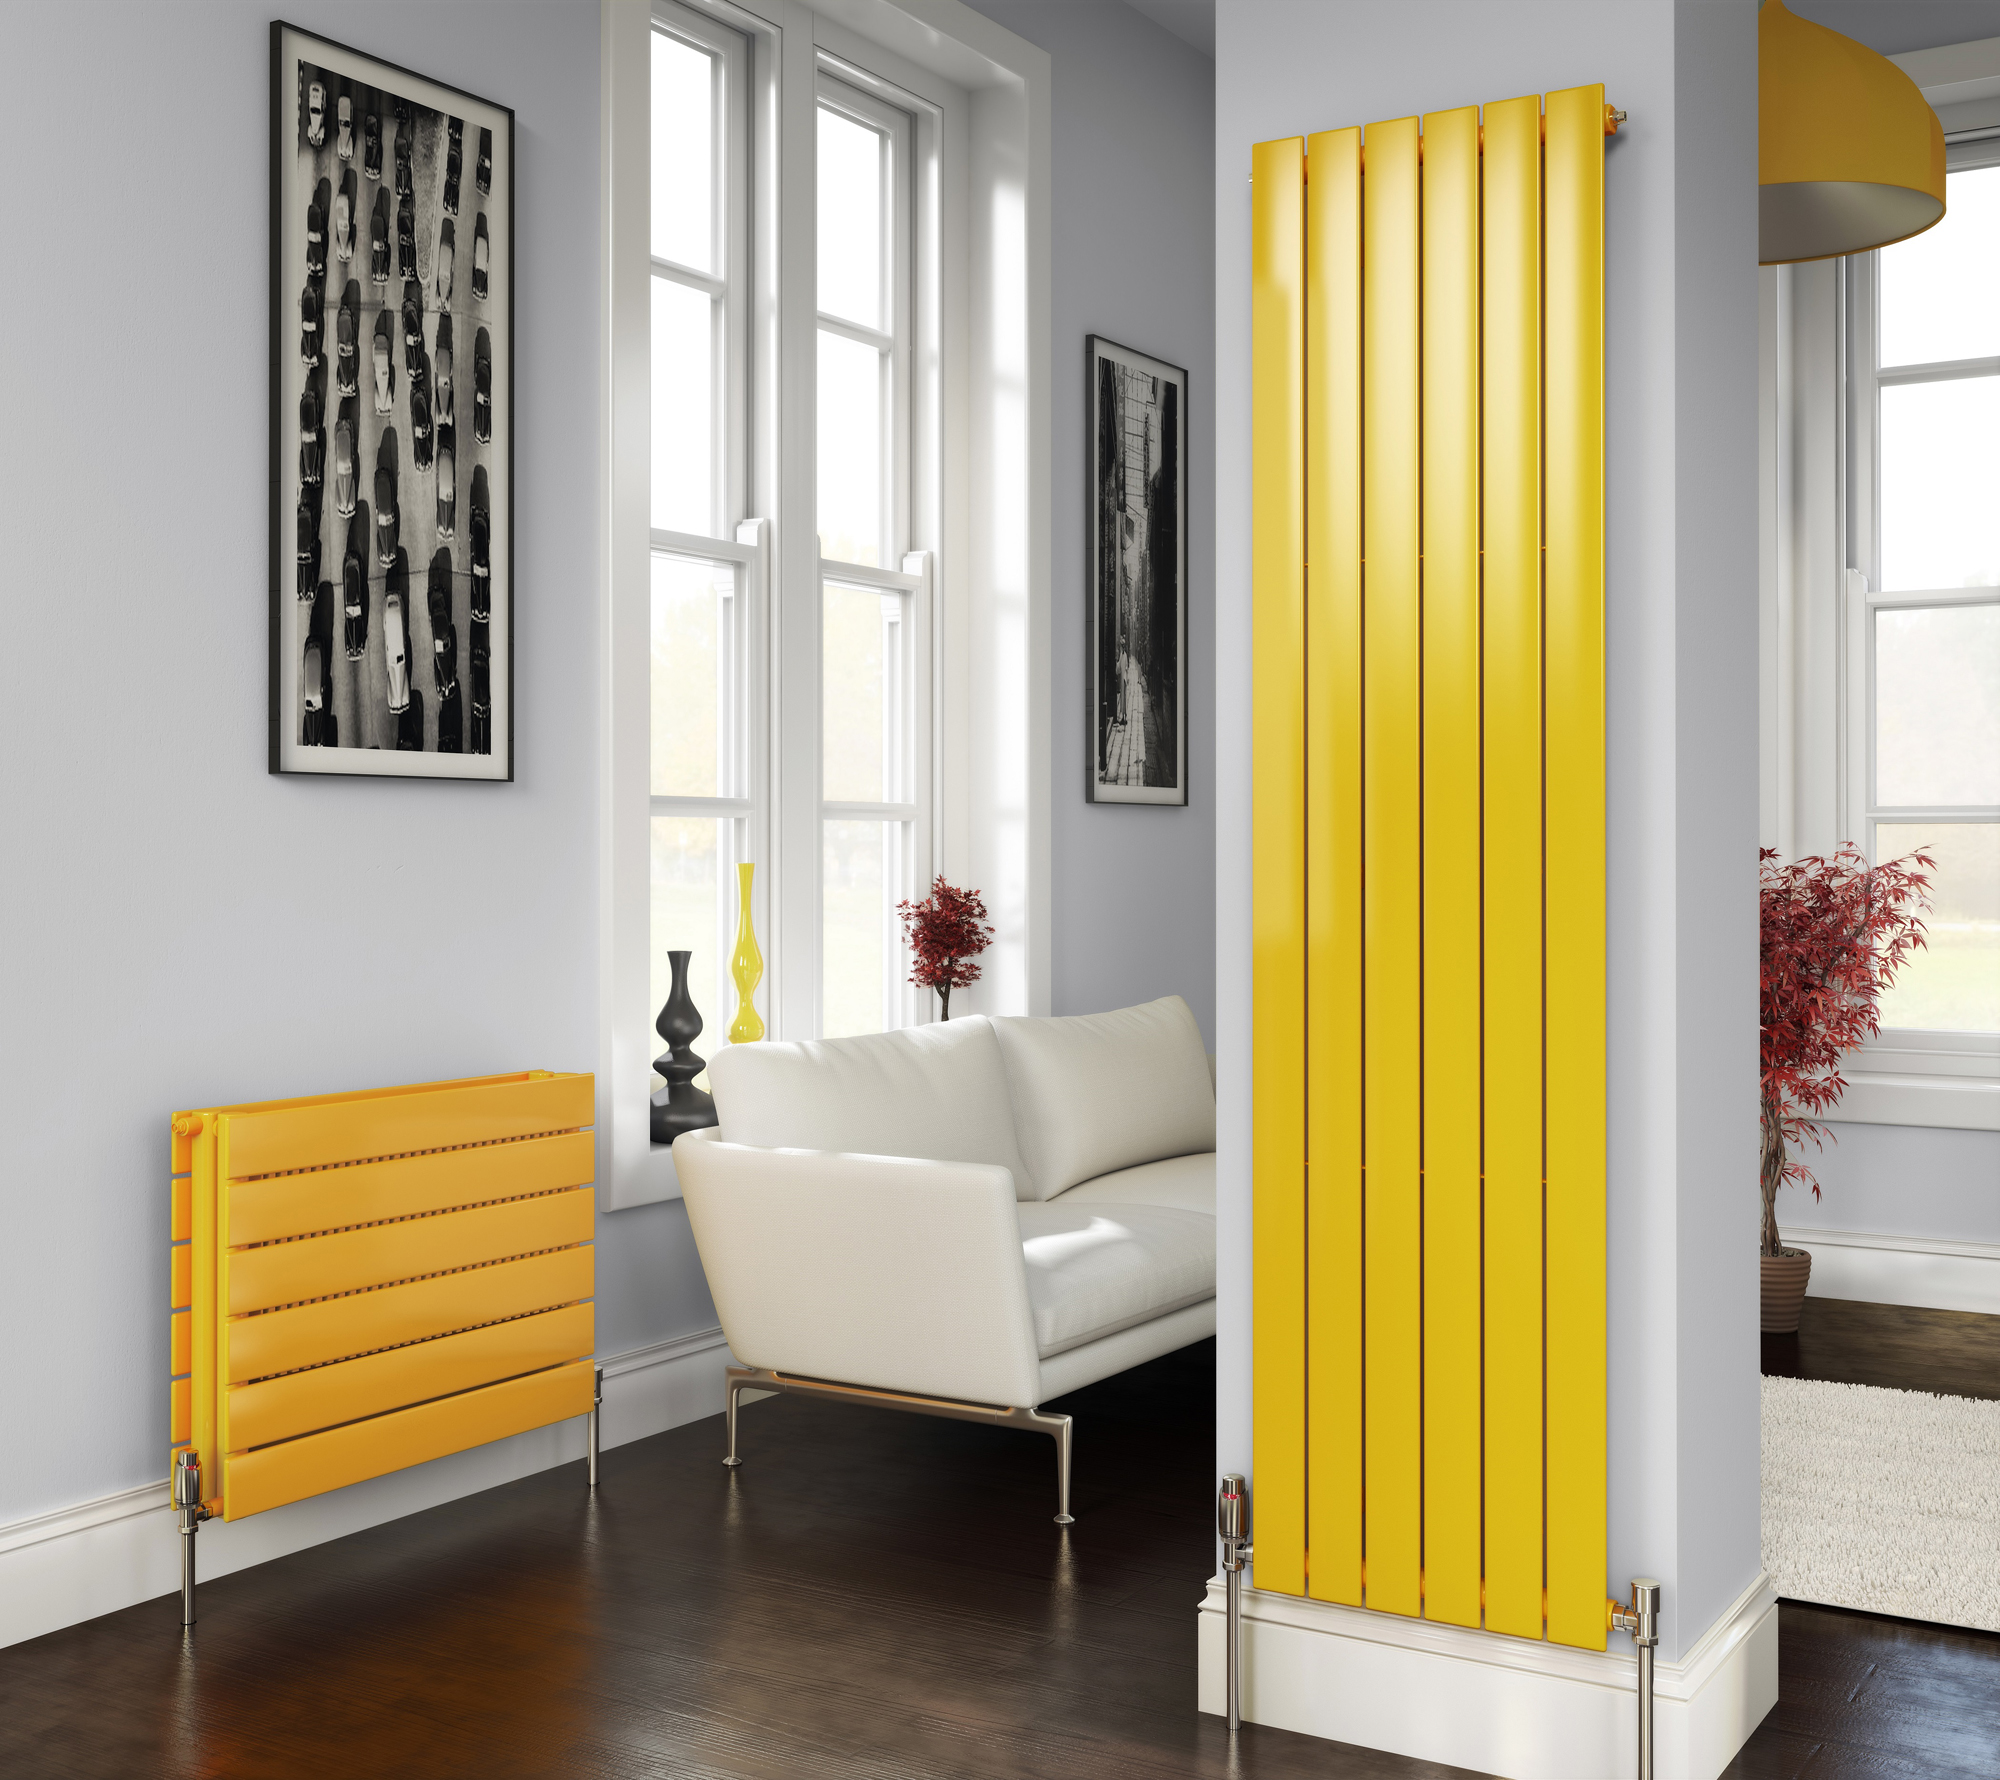 Widening options for radiator design